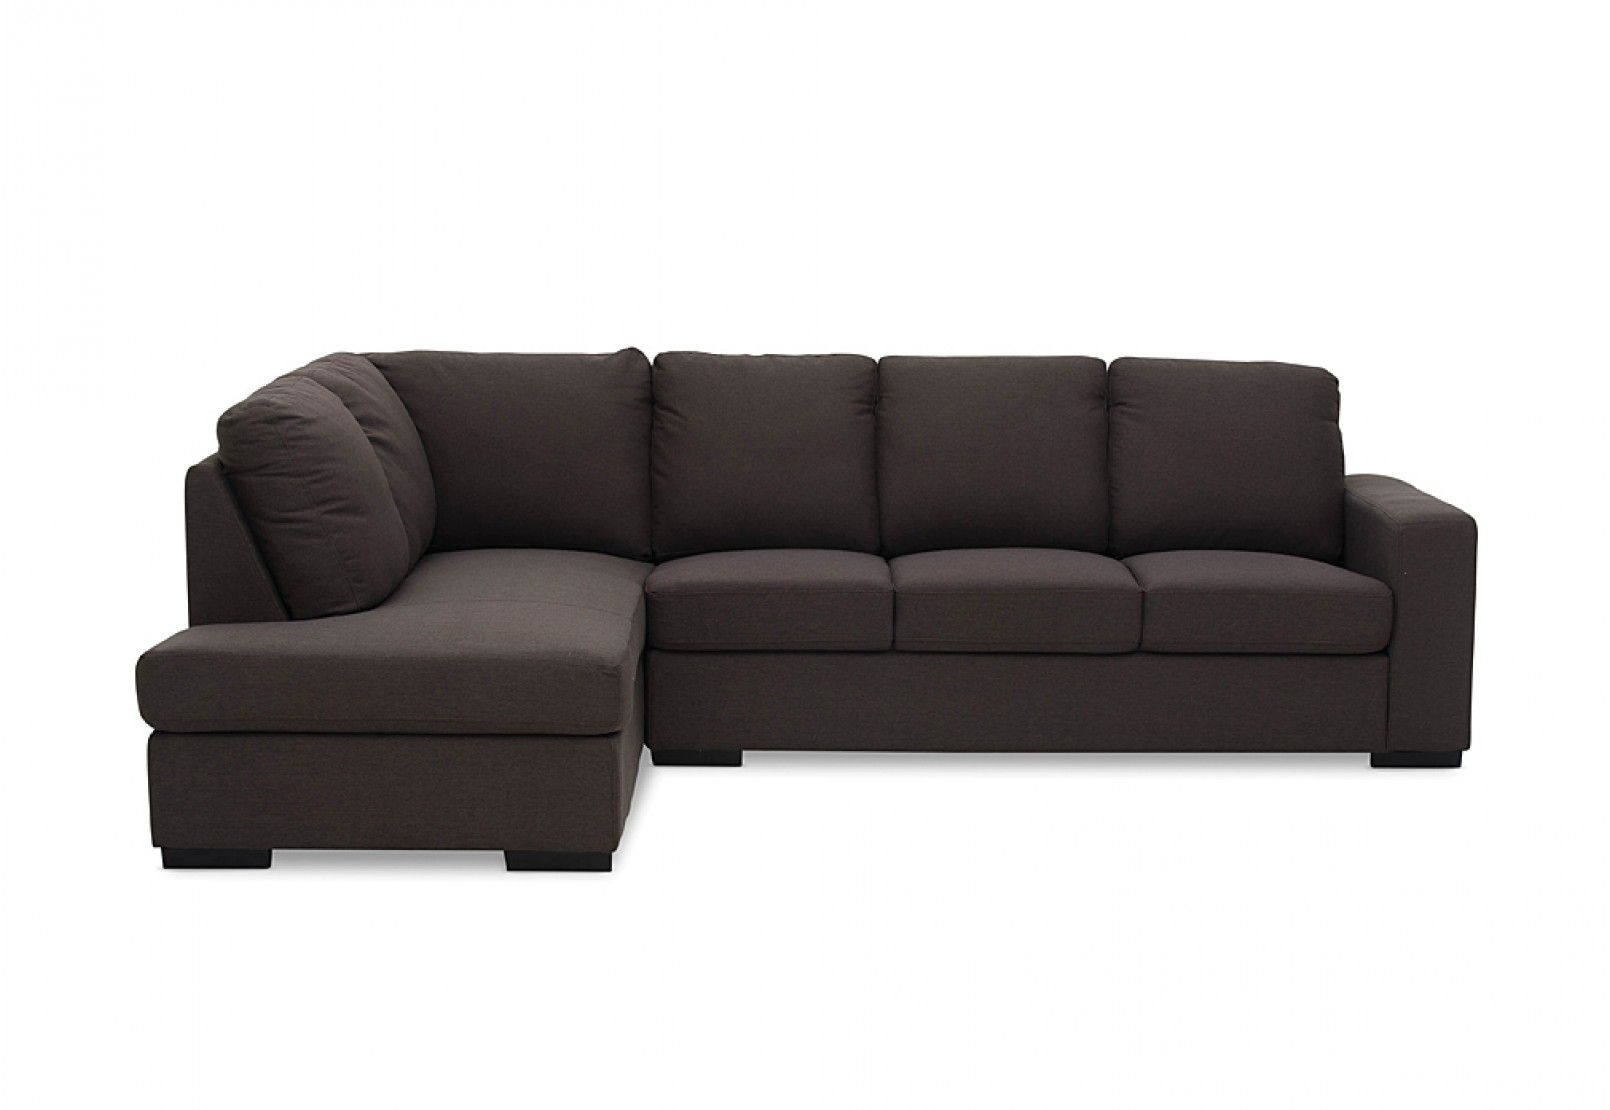 Nixon Fabric 4 Seater Sofa with Chaise | Super A-Mart in ...